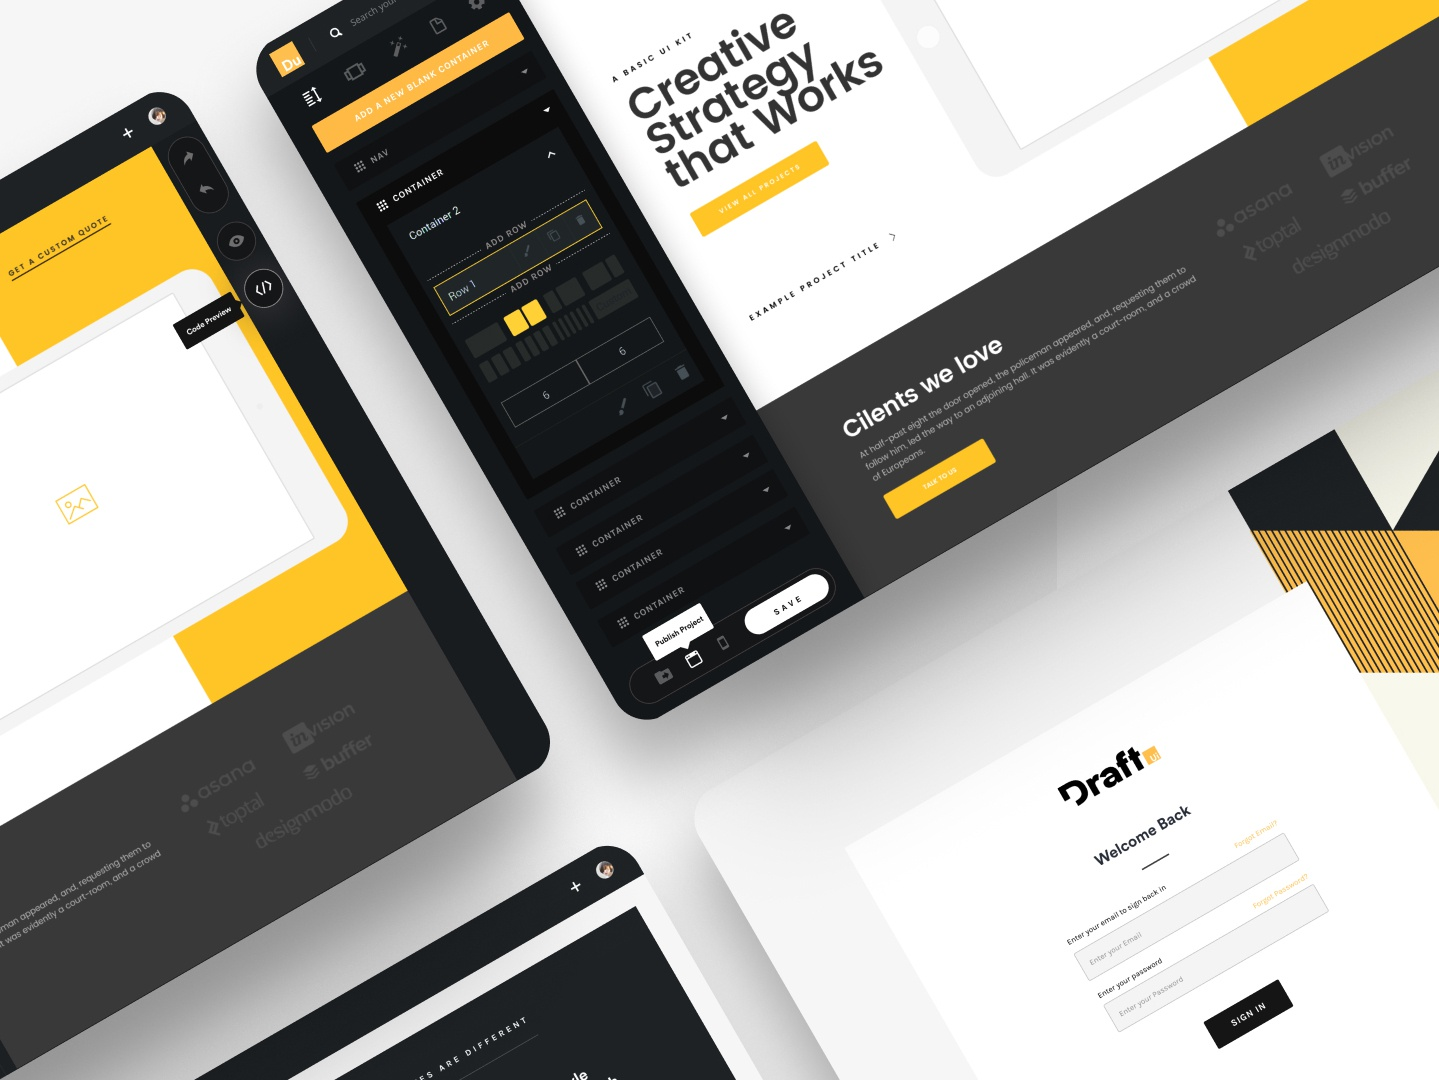 Draft - Turn Figma files into HTML software landing page vector design ui login page loging dashboard template dashboard app dashboard ui dashboard draft